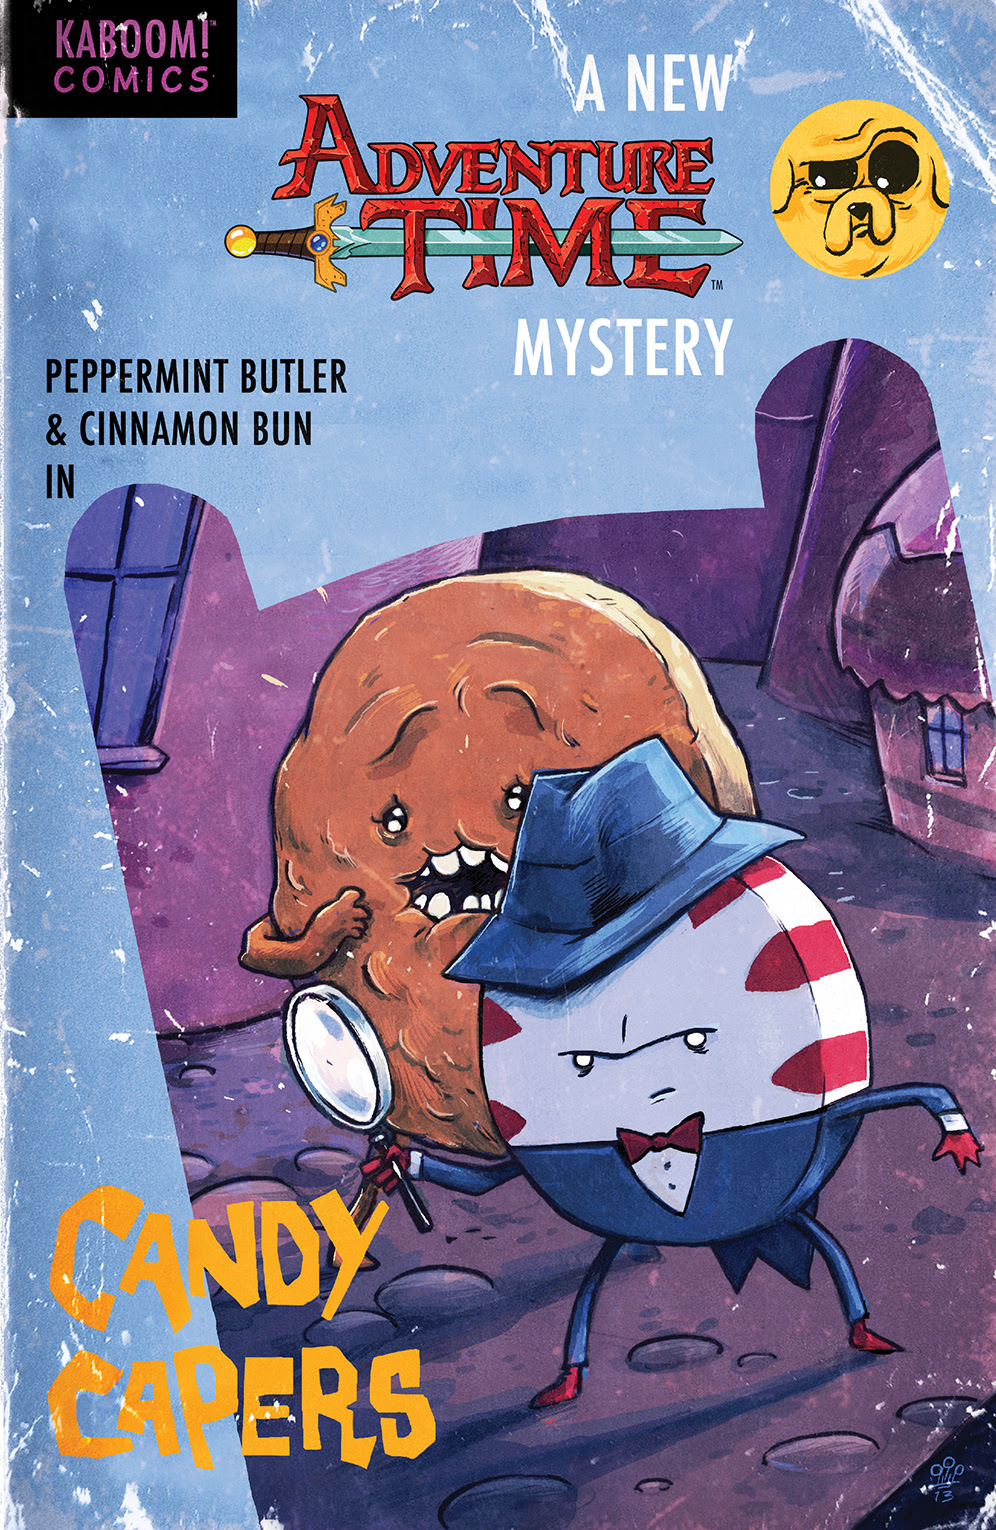 ADVENTURE TIME: CANDY CAPERS TP Cover by Michael Dialynas